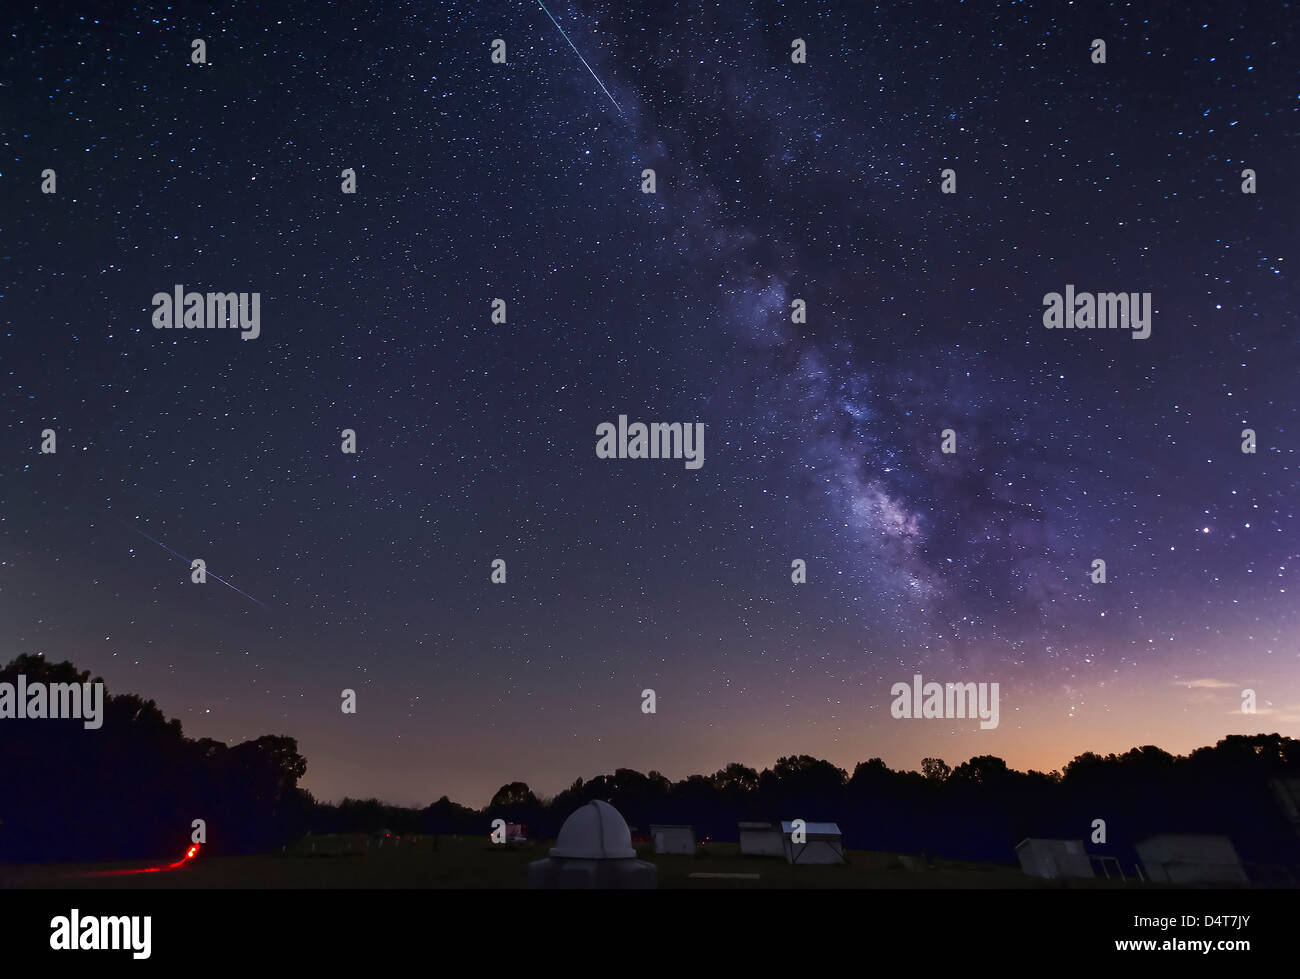 Two Perseid meteors streak across the Milky Way during the 2012 meteor shower in Oklahoma. Stock Photo